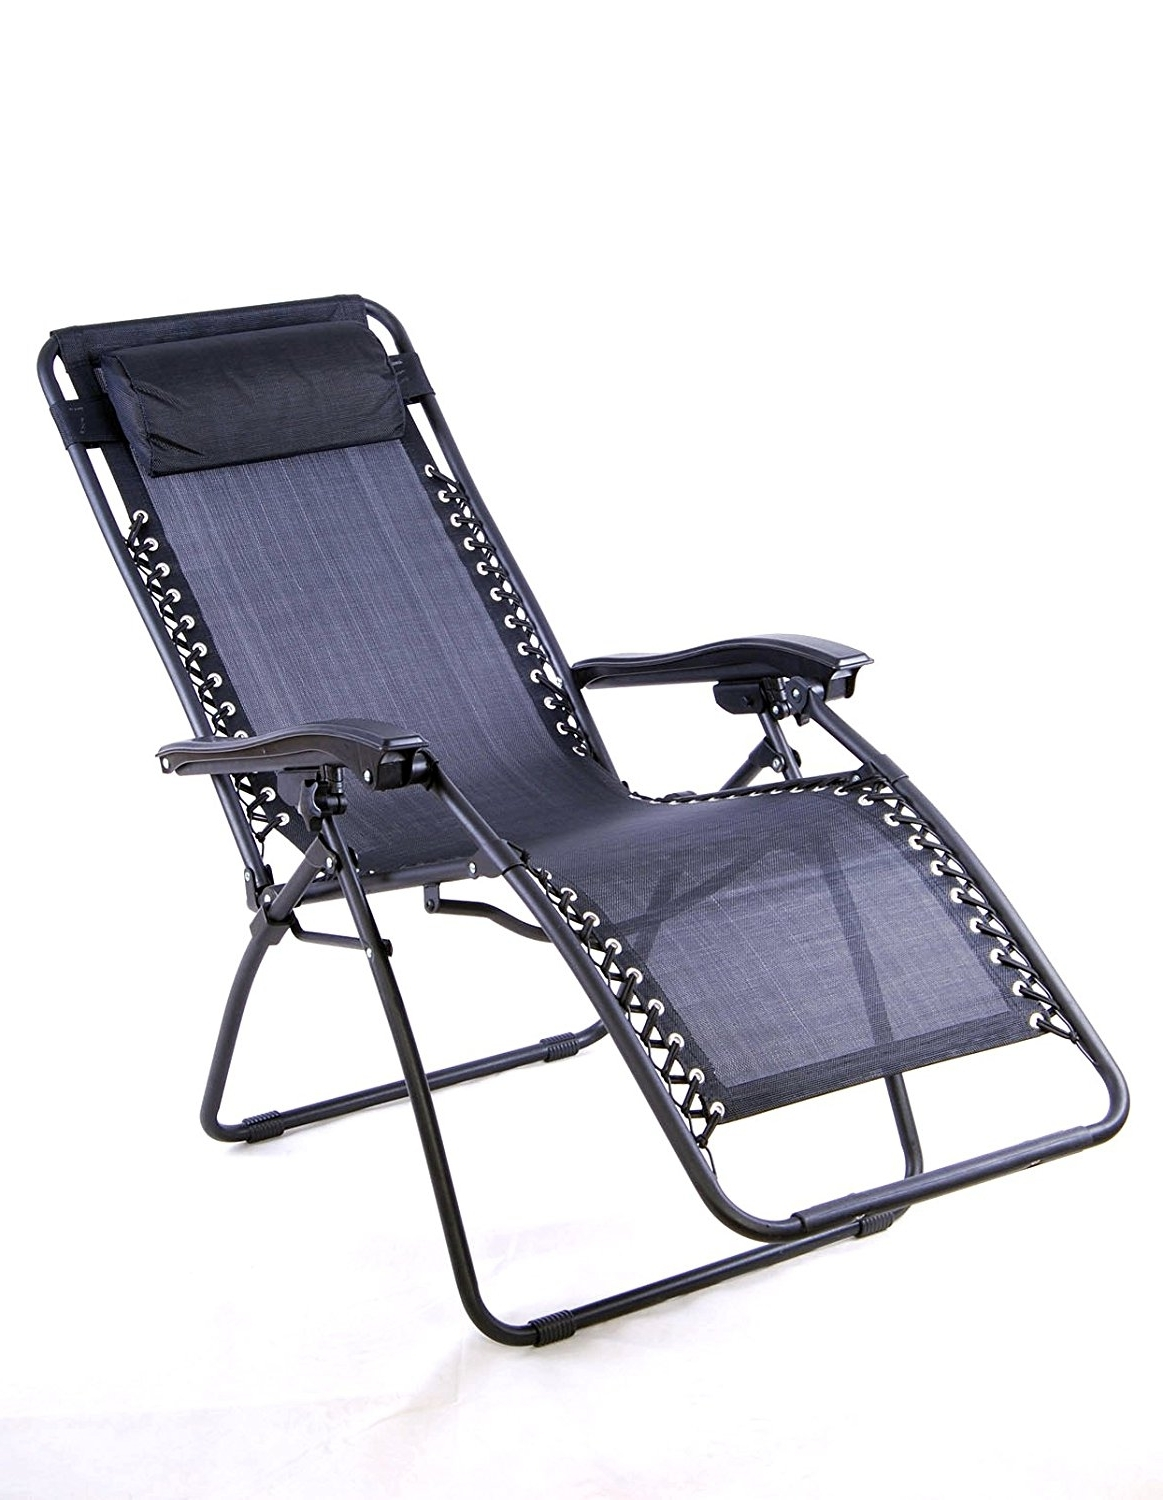 Sonoma Outdoors Antigravity Chair 15 Best Ideas Of Chaise Lounge Chairs At Kohls